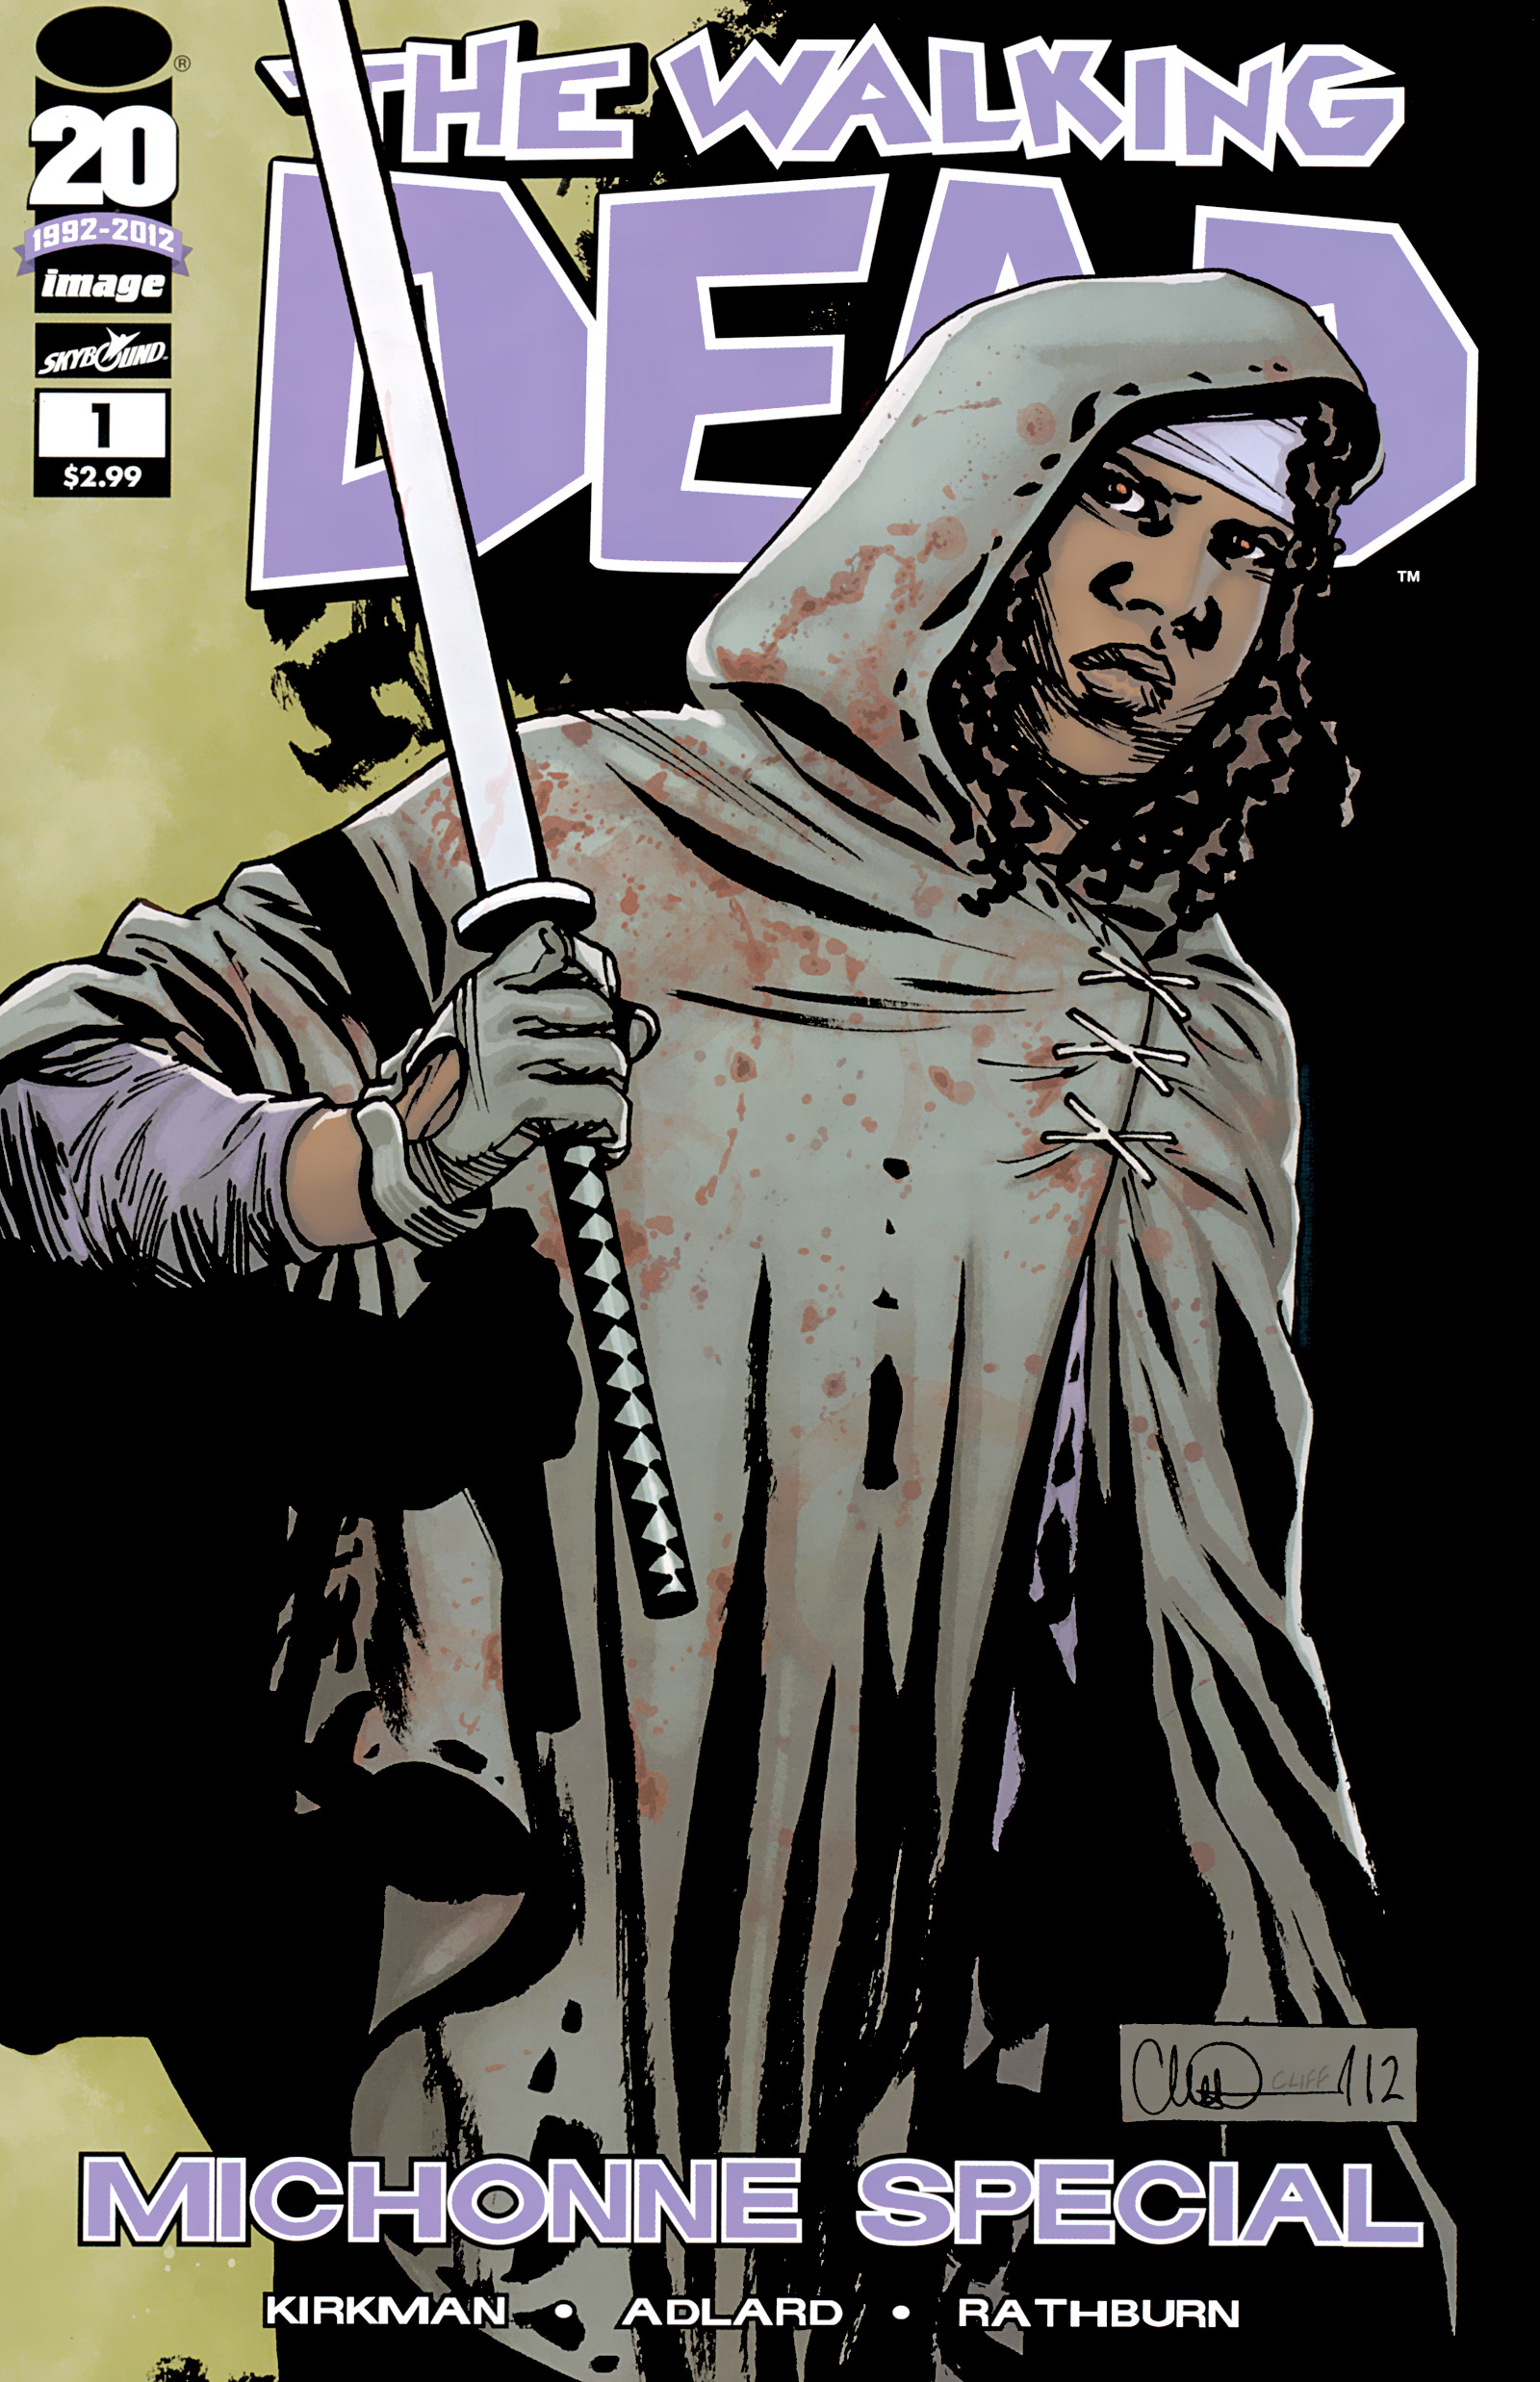 The Walking Dead _Special_-_Michonne_Special Page 1